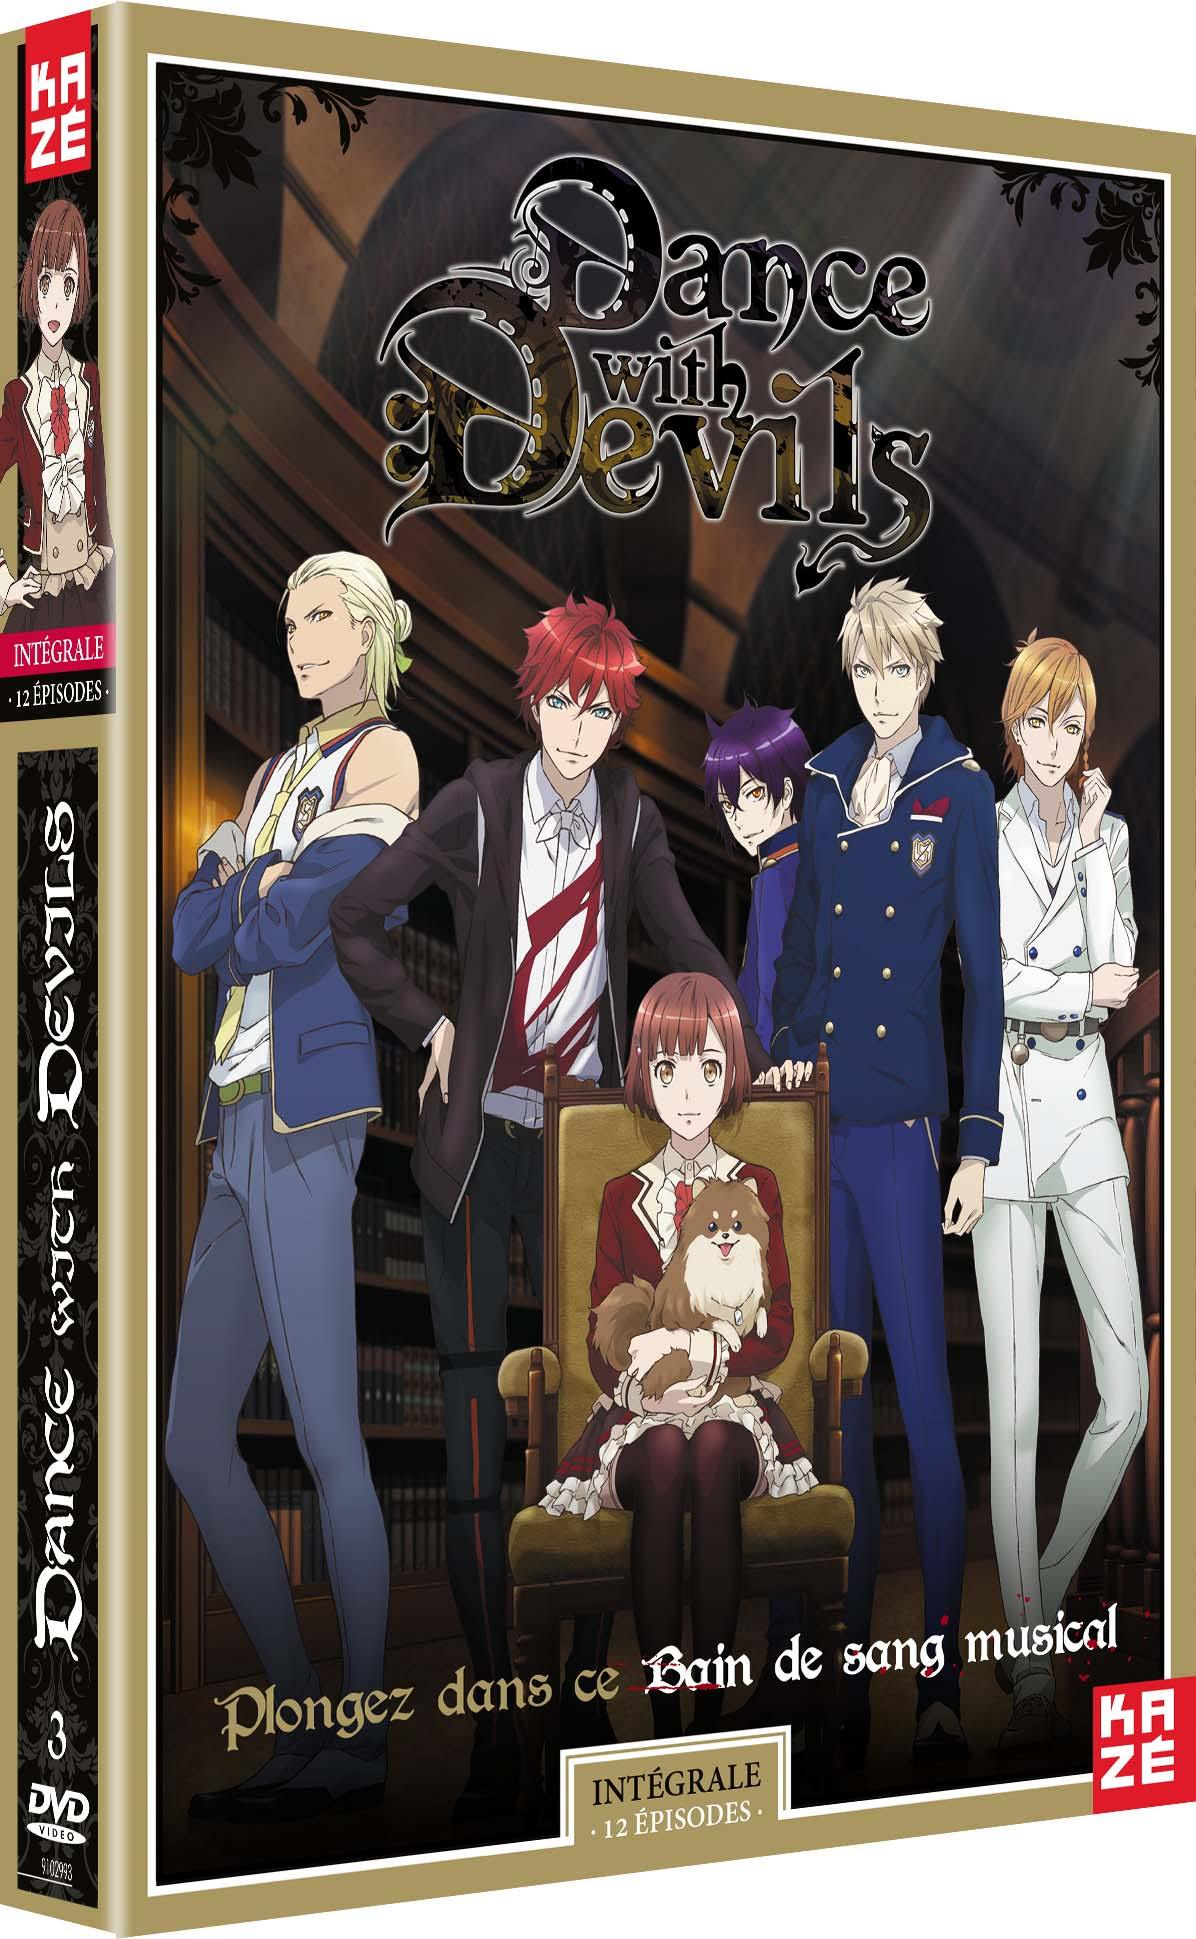 Dance with devils - integrale serie - 3 dvd